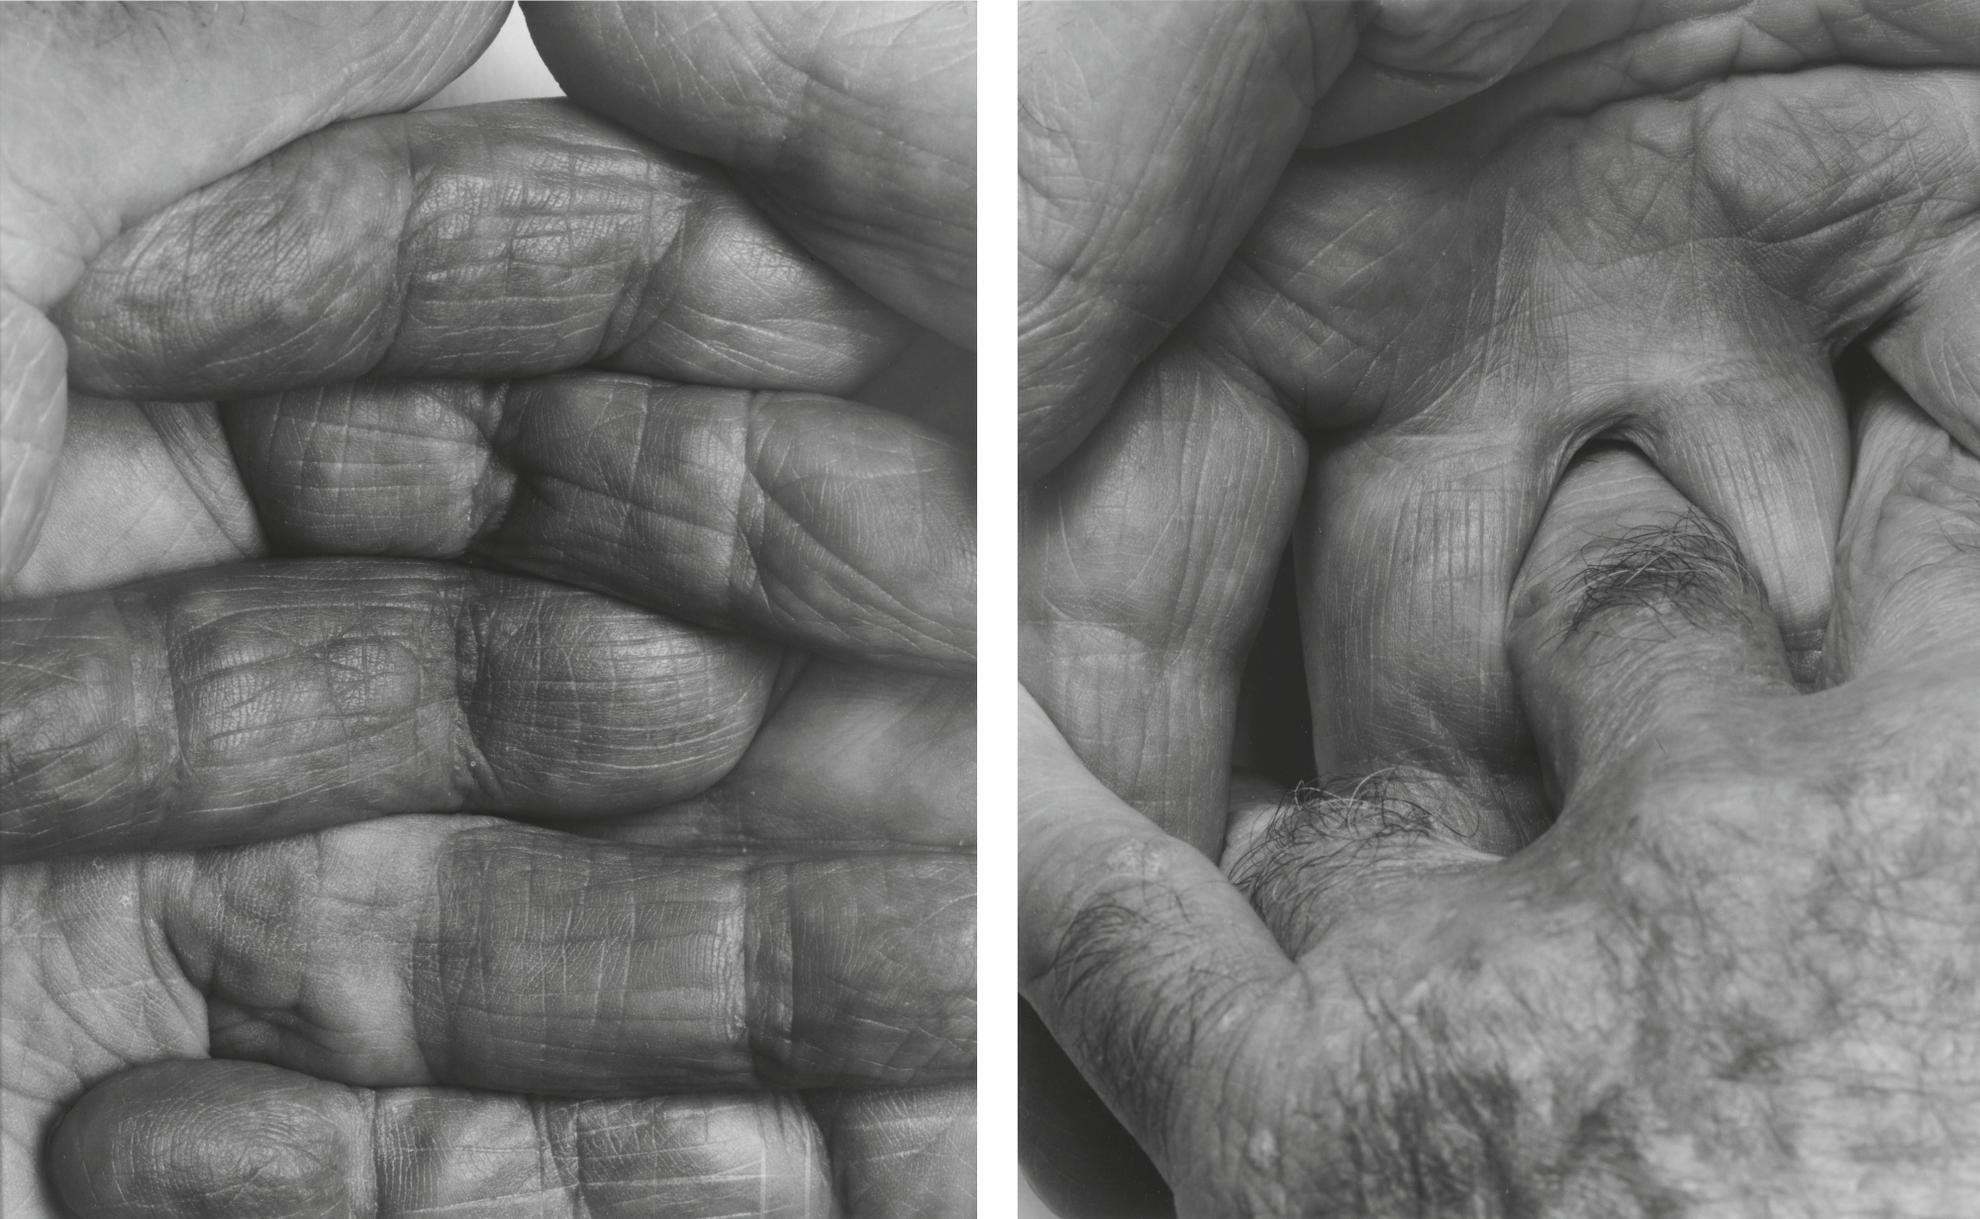 John Coplans-Self Portrait: Interlocking Fingers No. 1 And No. 2-1999